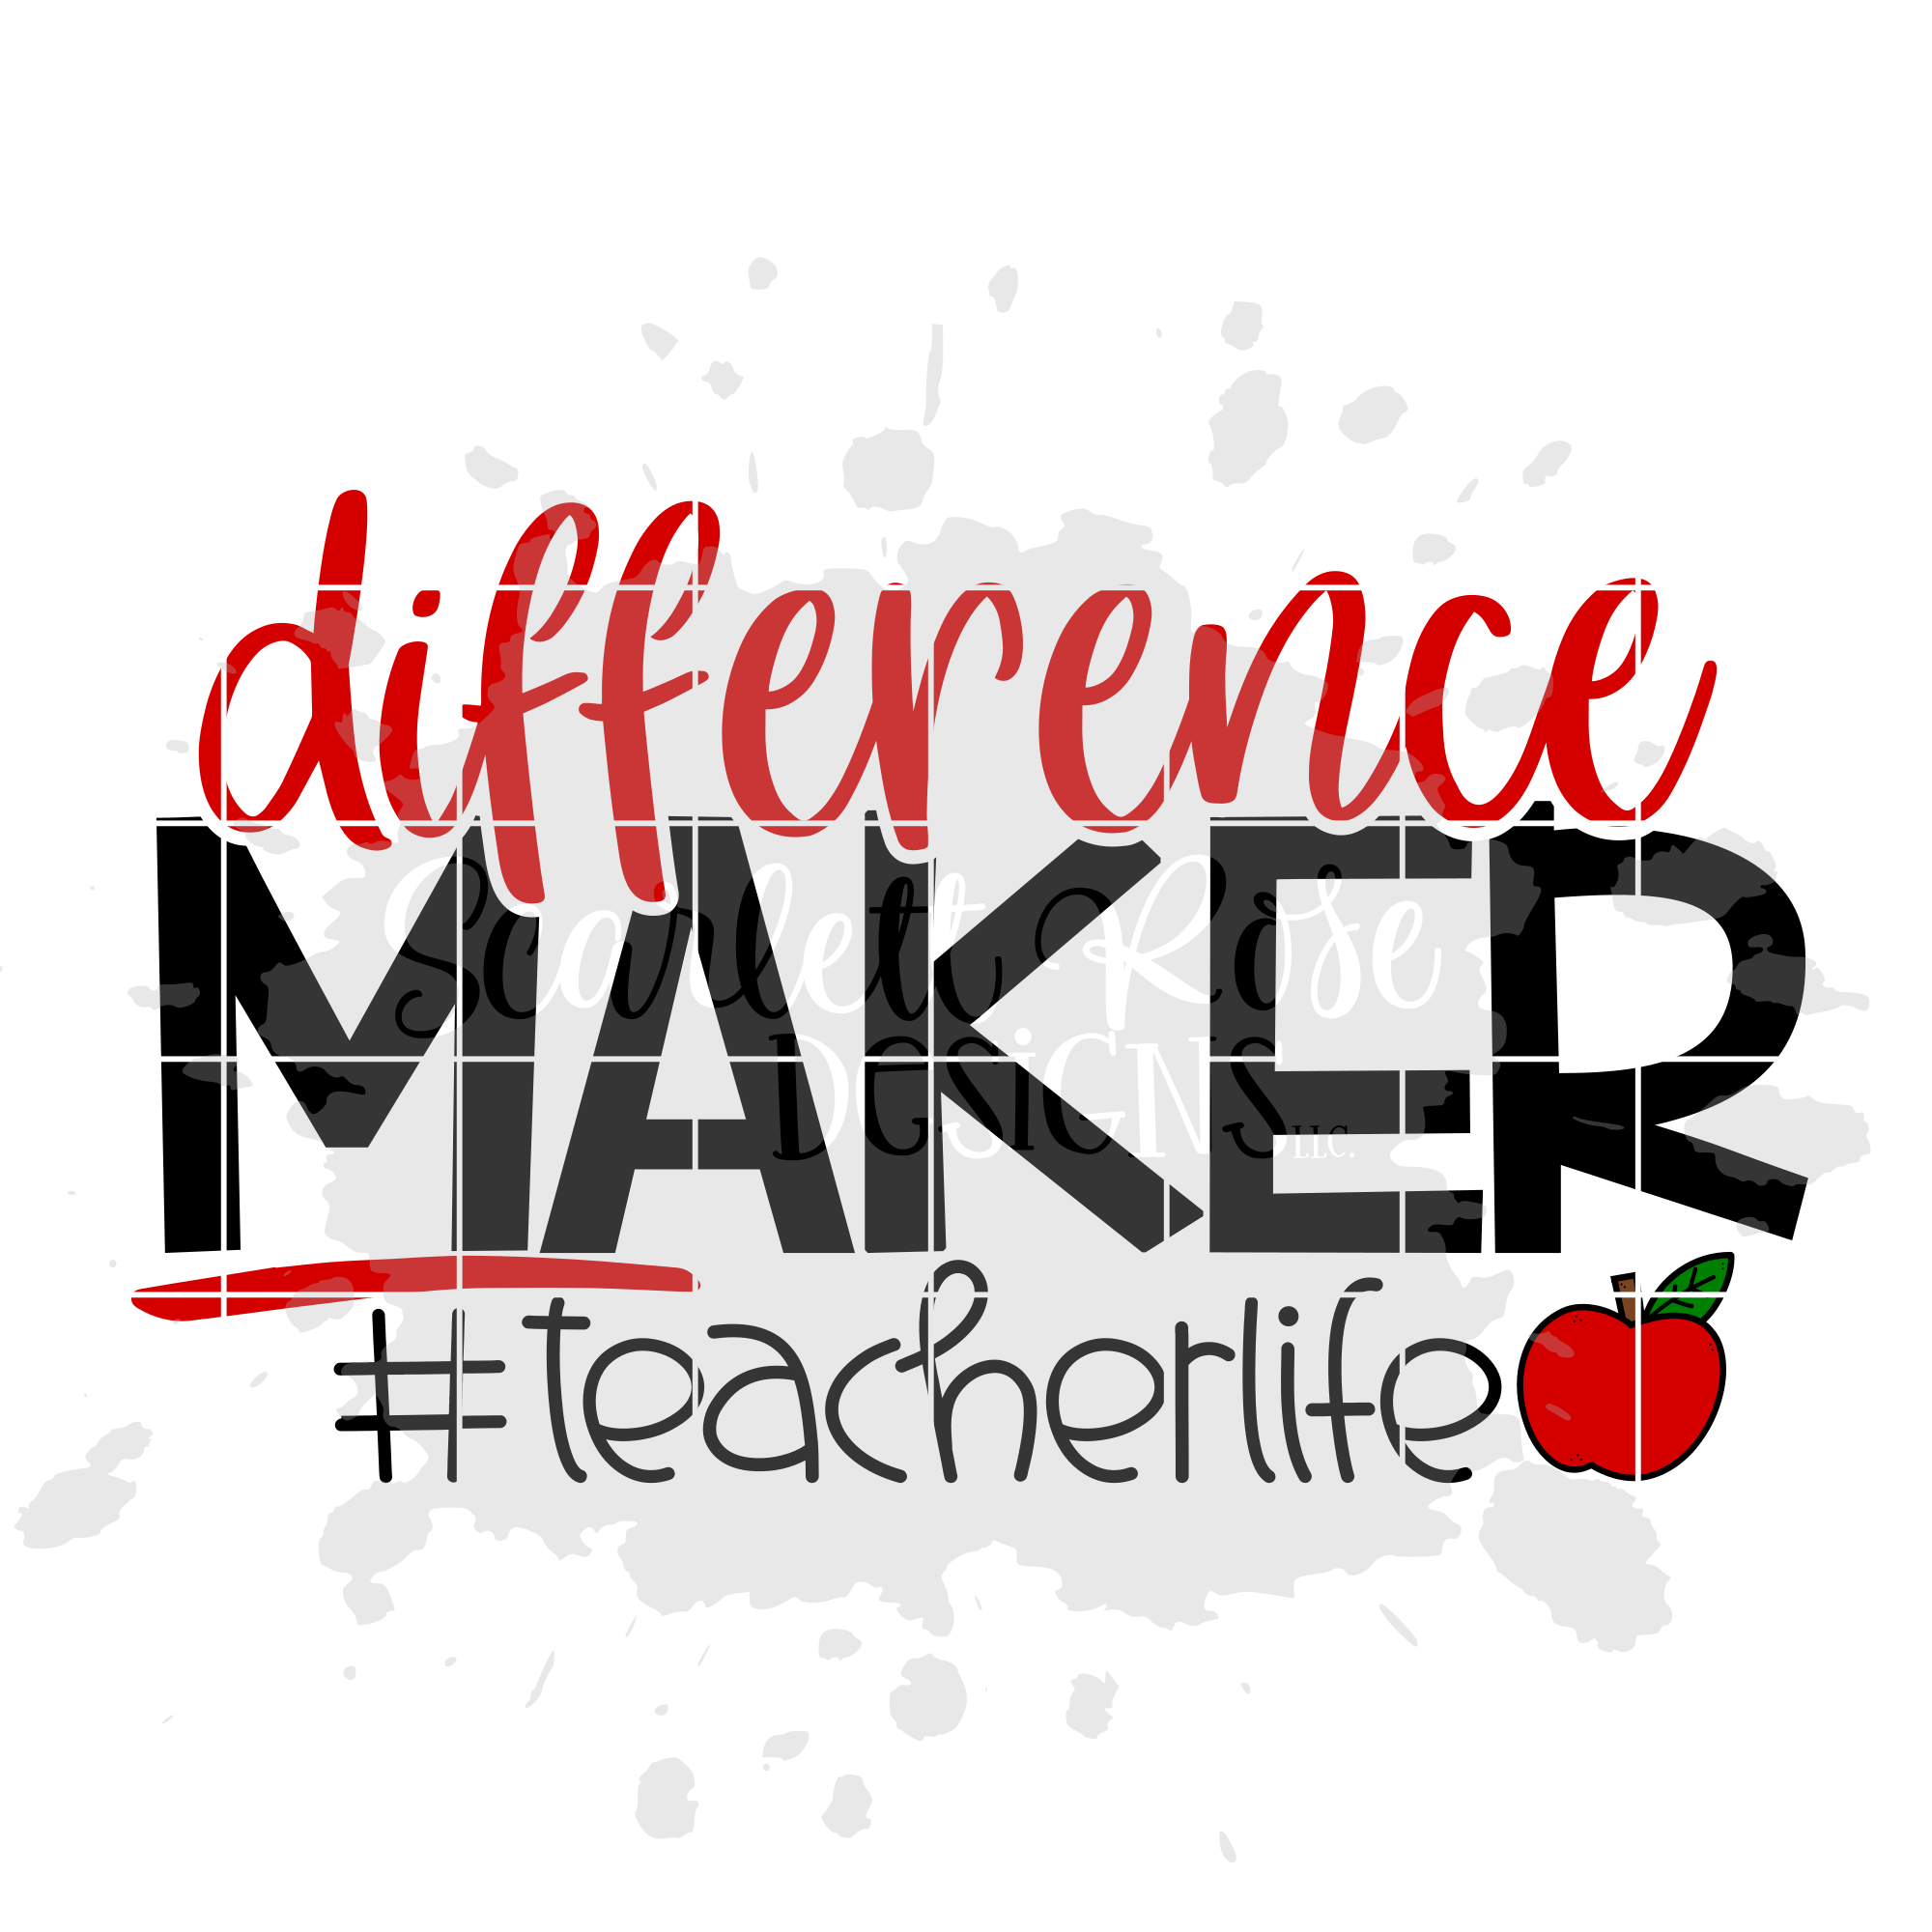 teacher life svg #132, Download drawings